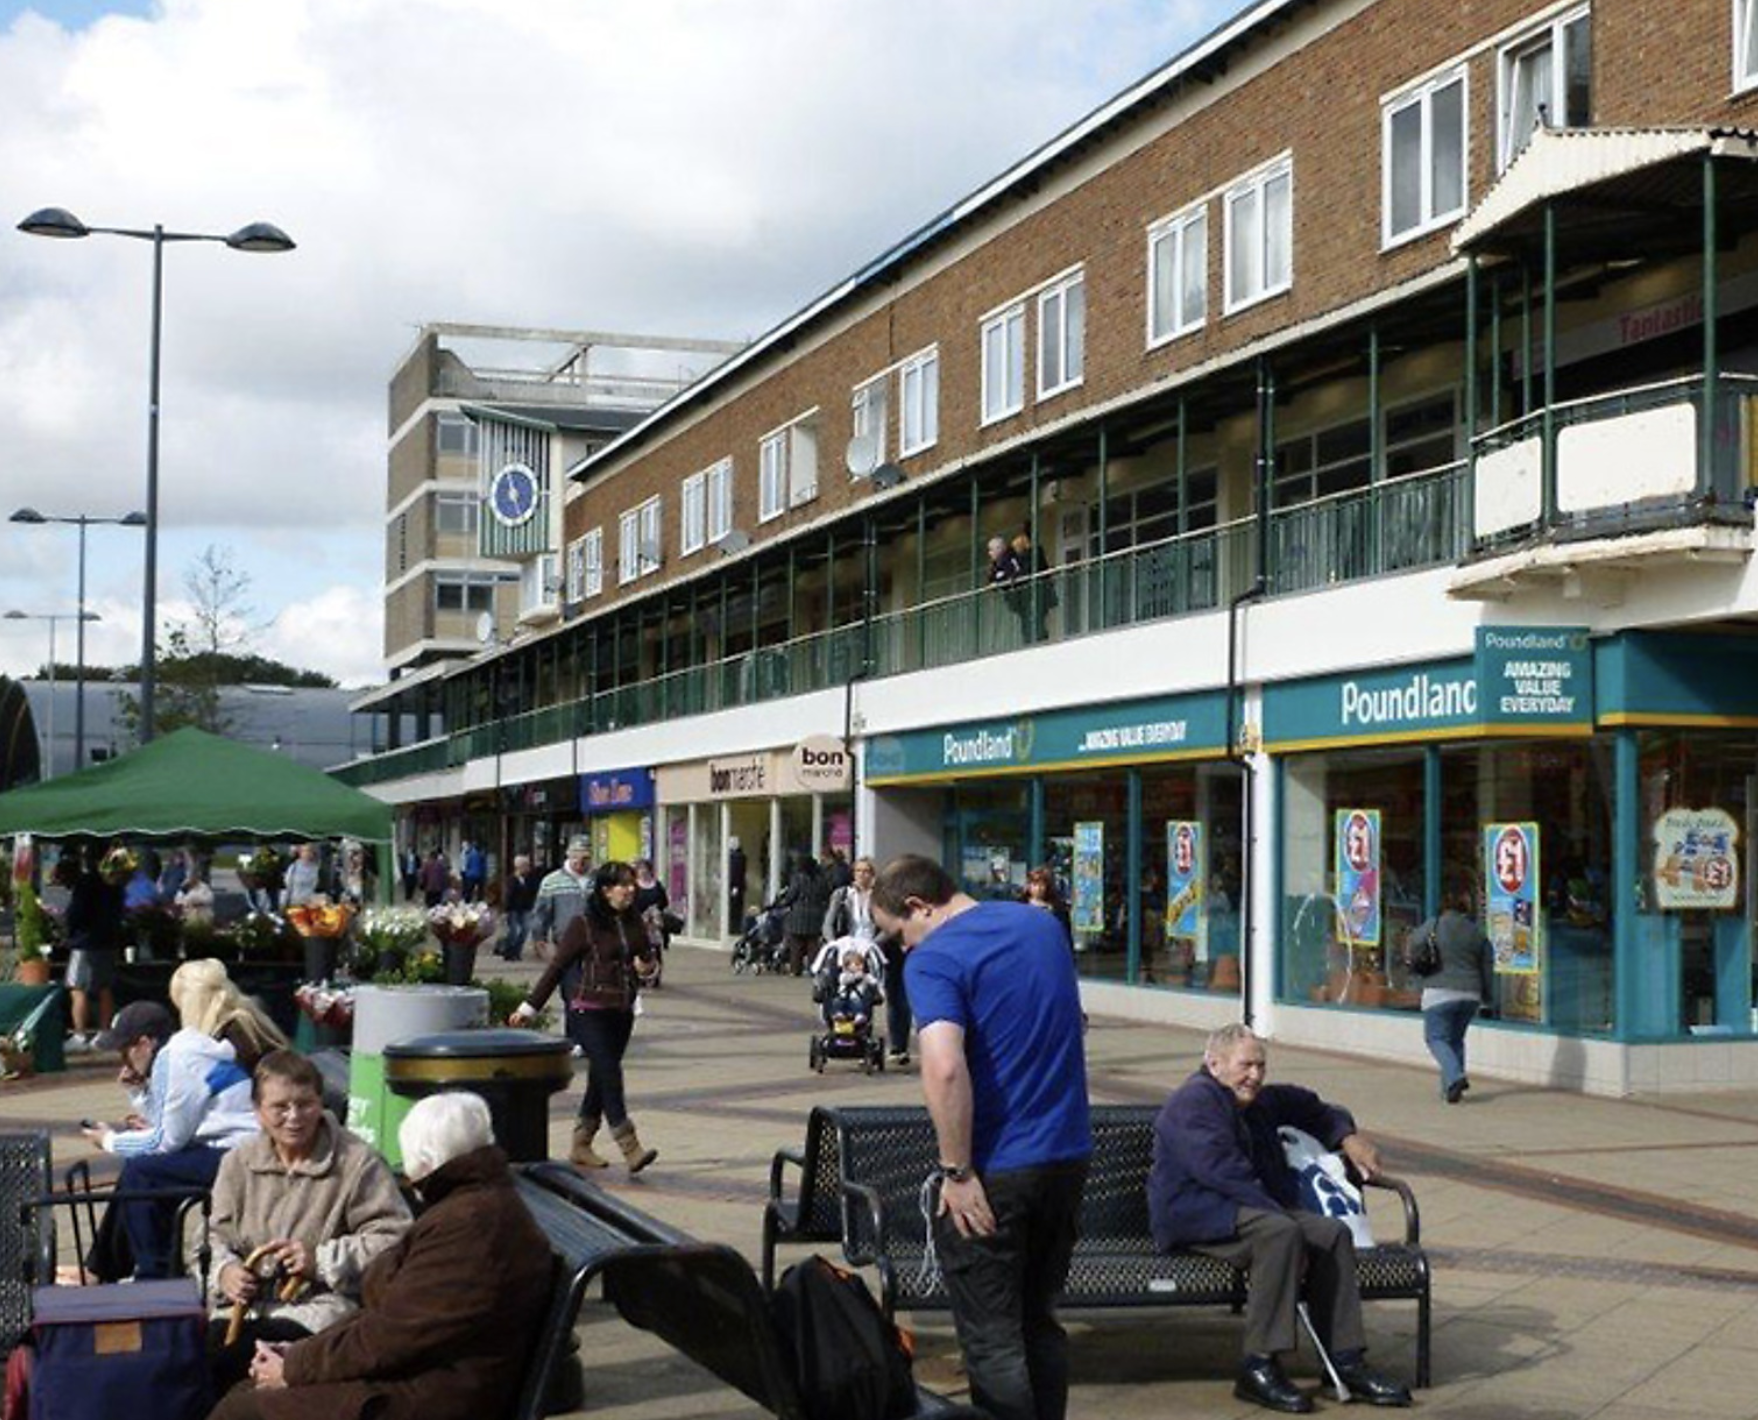 Corby high street of shops